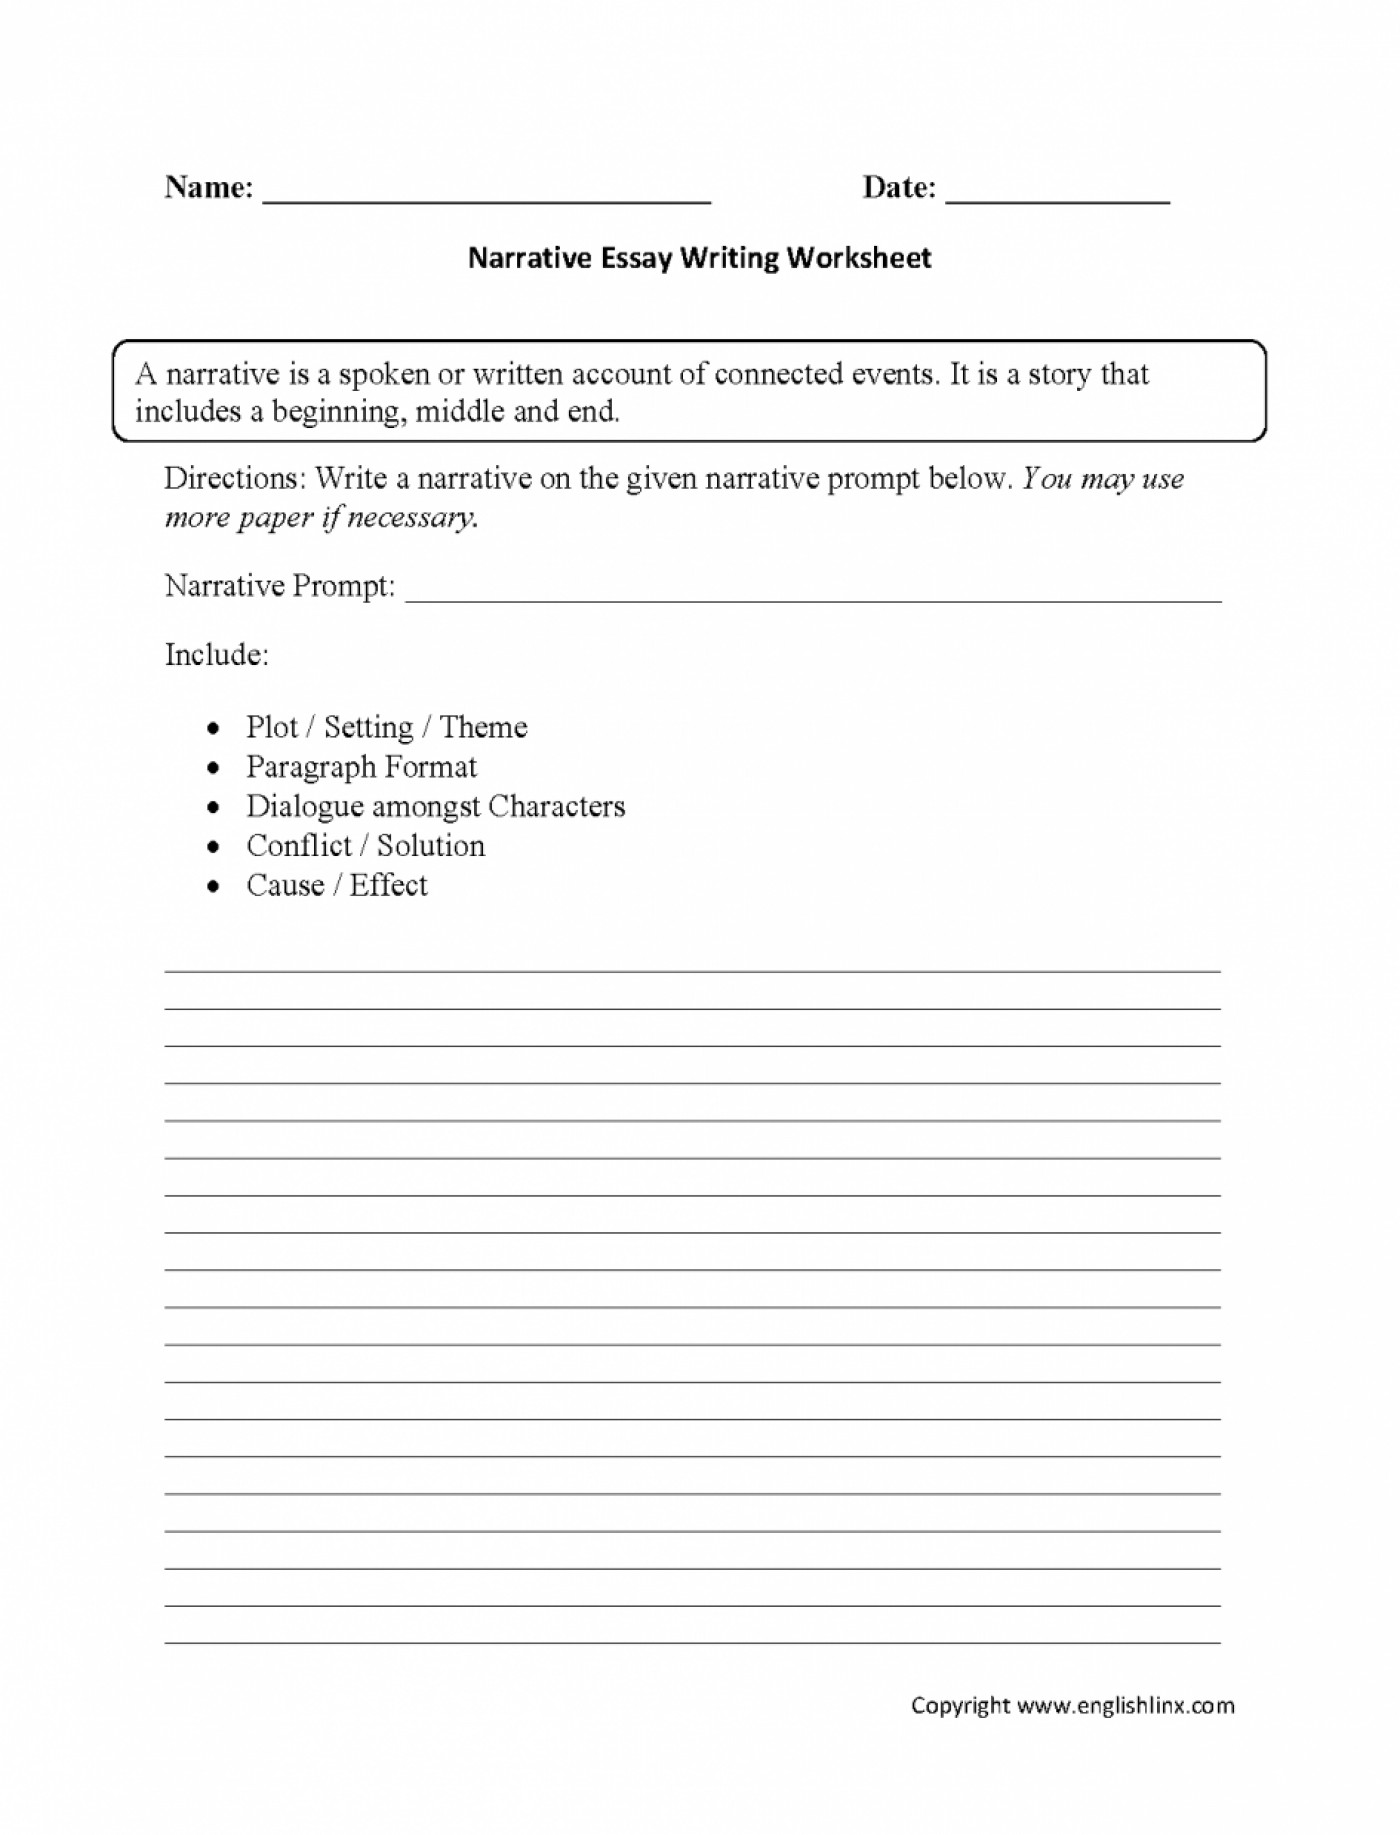 hight resolution of Third Person Narrative Sample Worksheets   Printable Worksheets and  Activities for Teachers